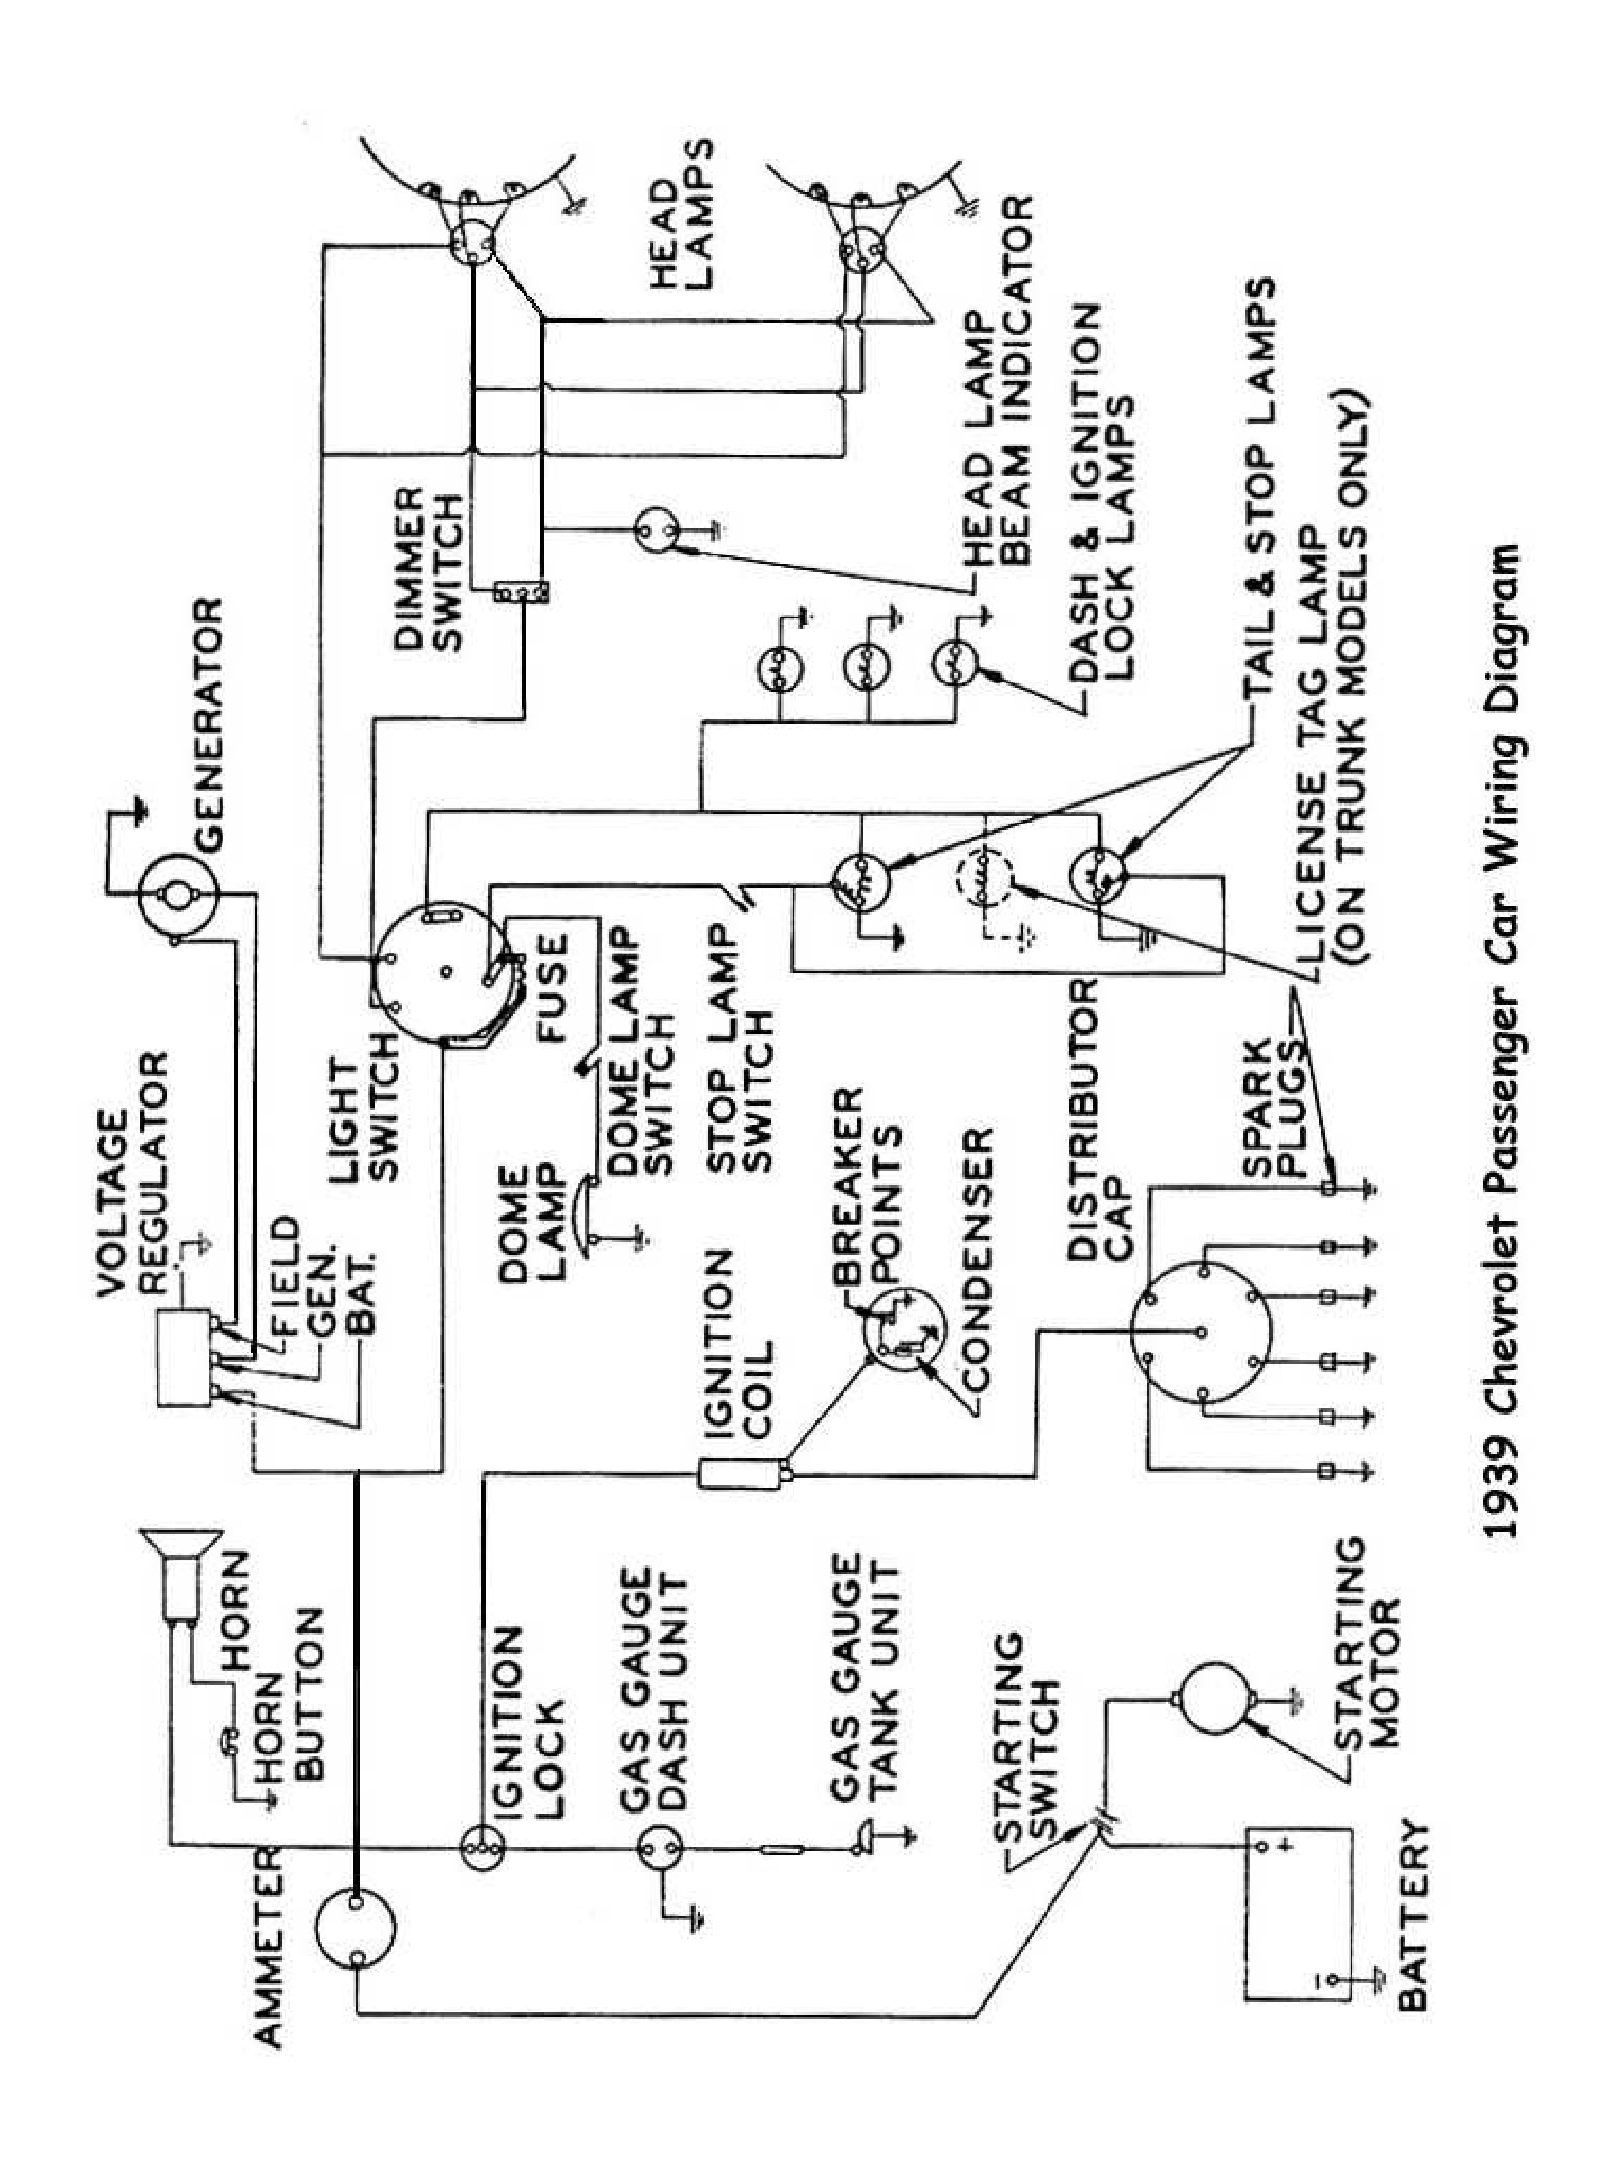 Basic ignition wiring diagram unique wiring diagram image